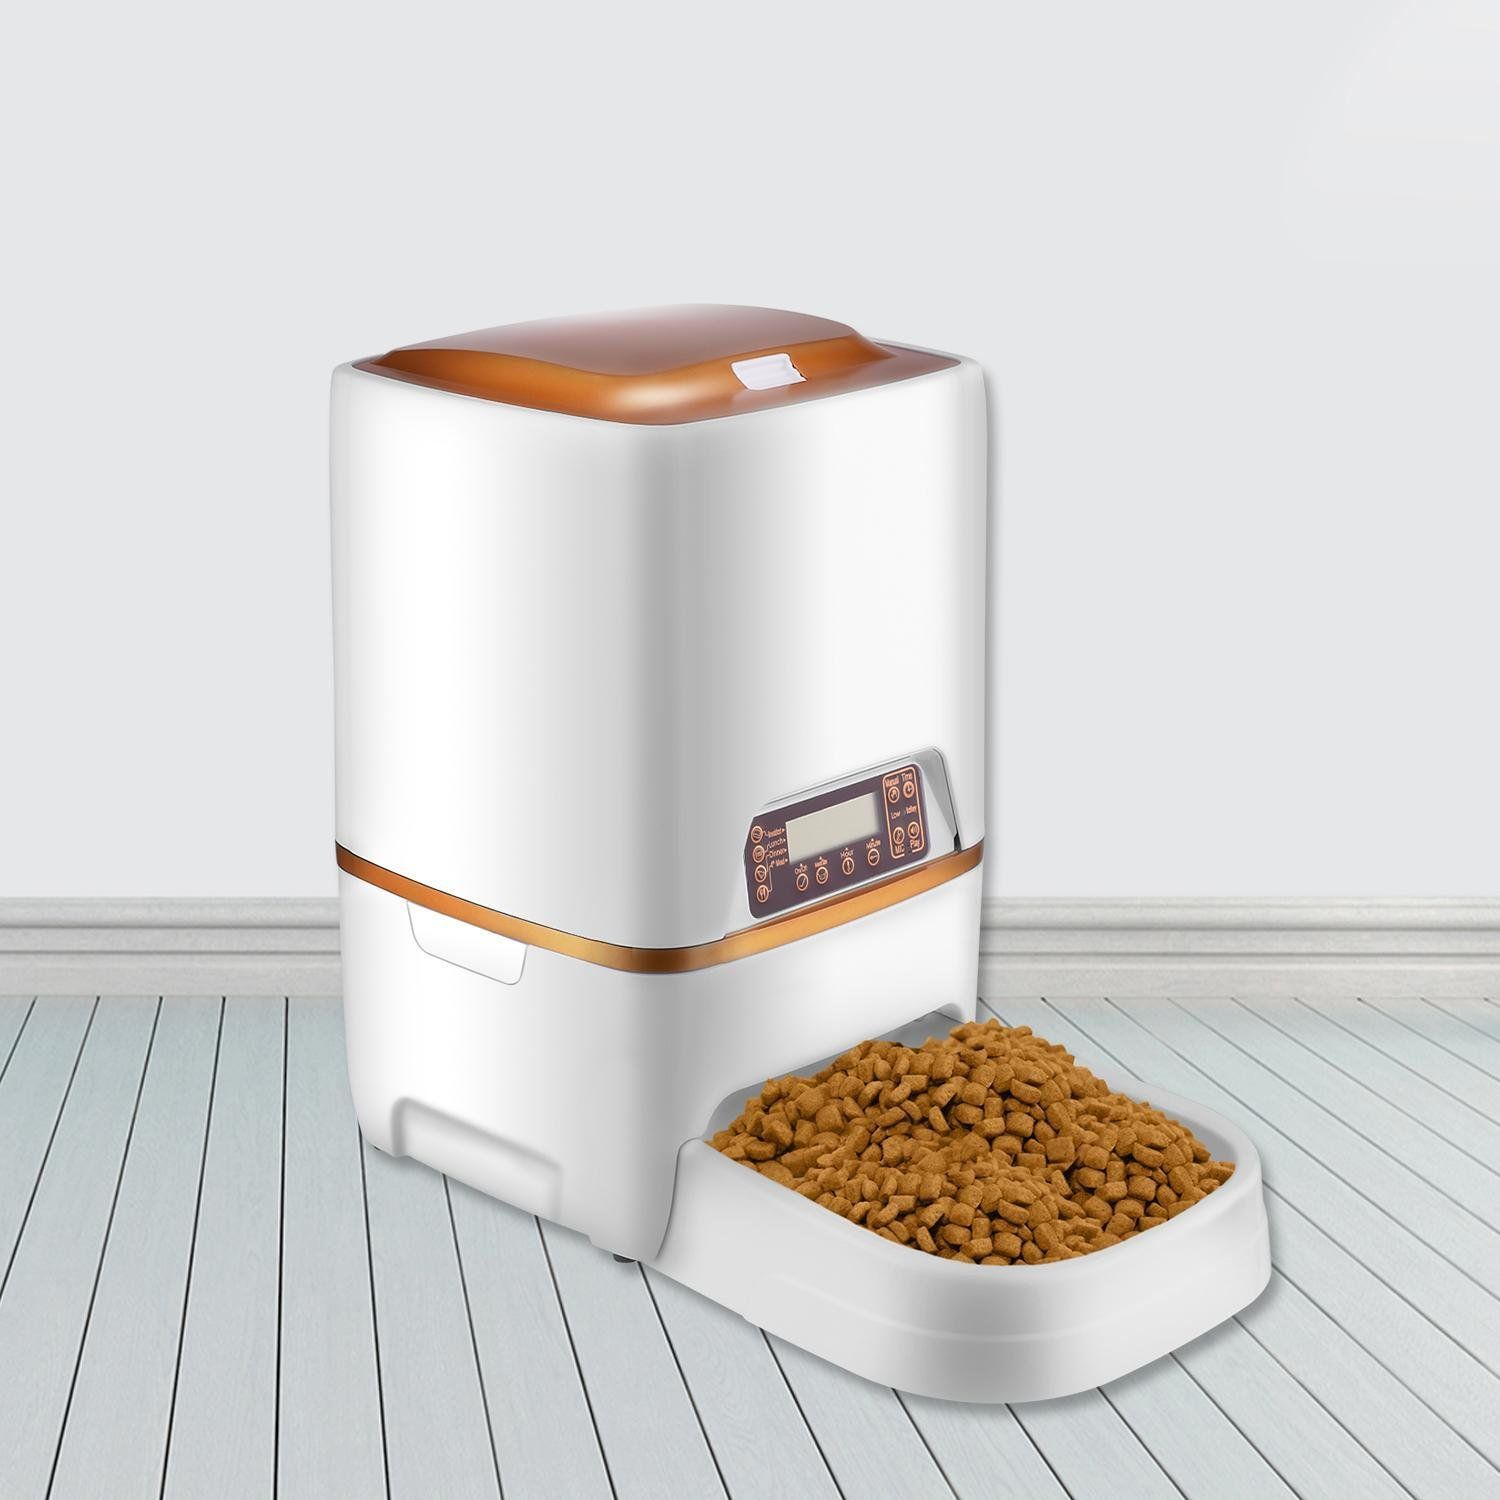 Kaluo 6L Automatic Pet Feeder Food Dispenser for Cats and